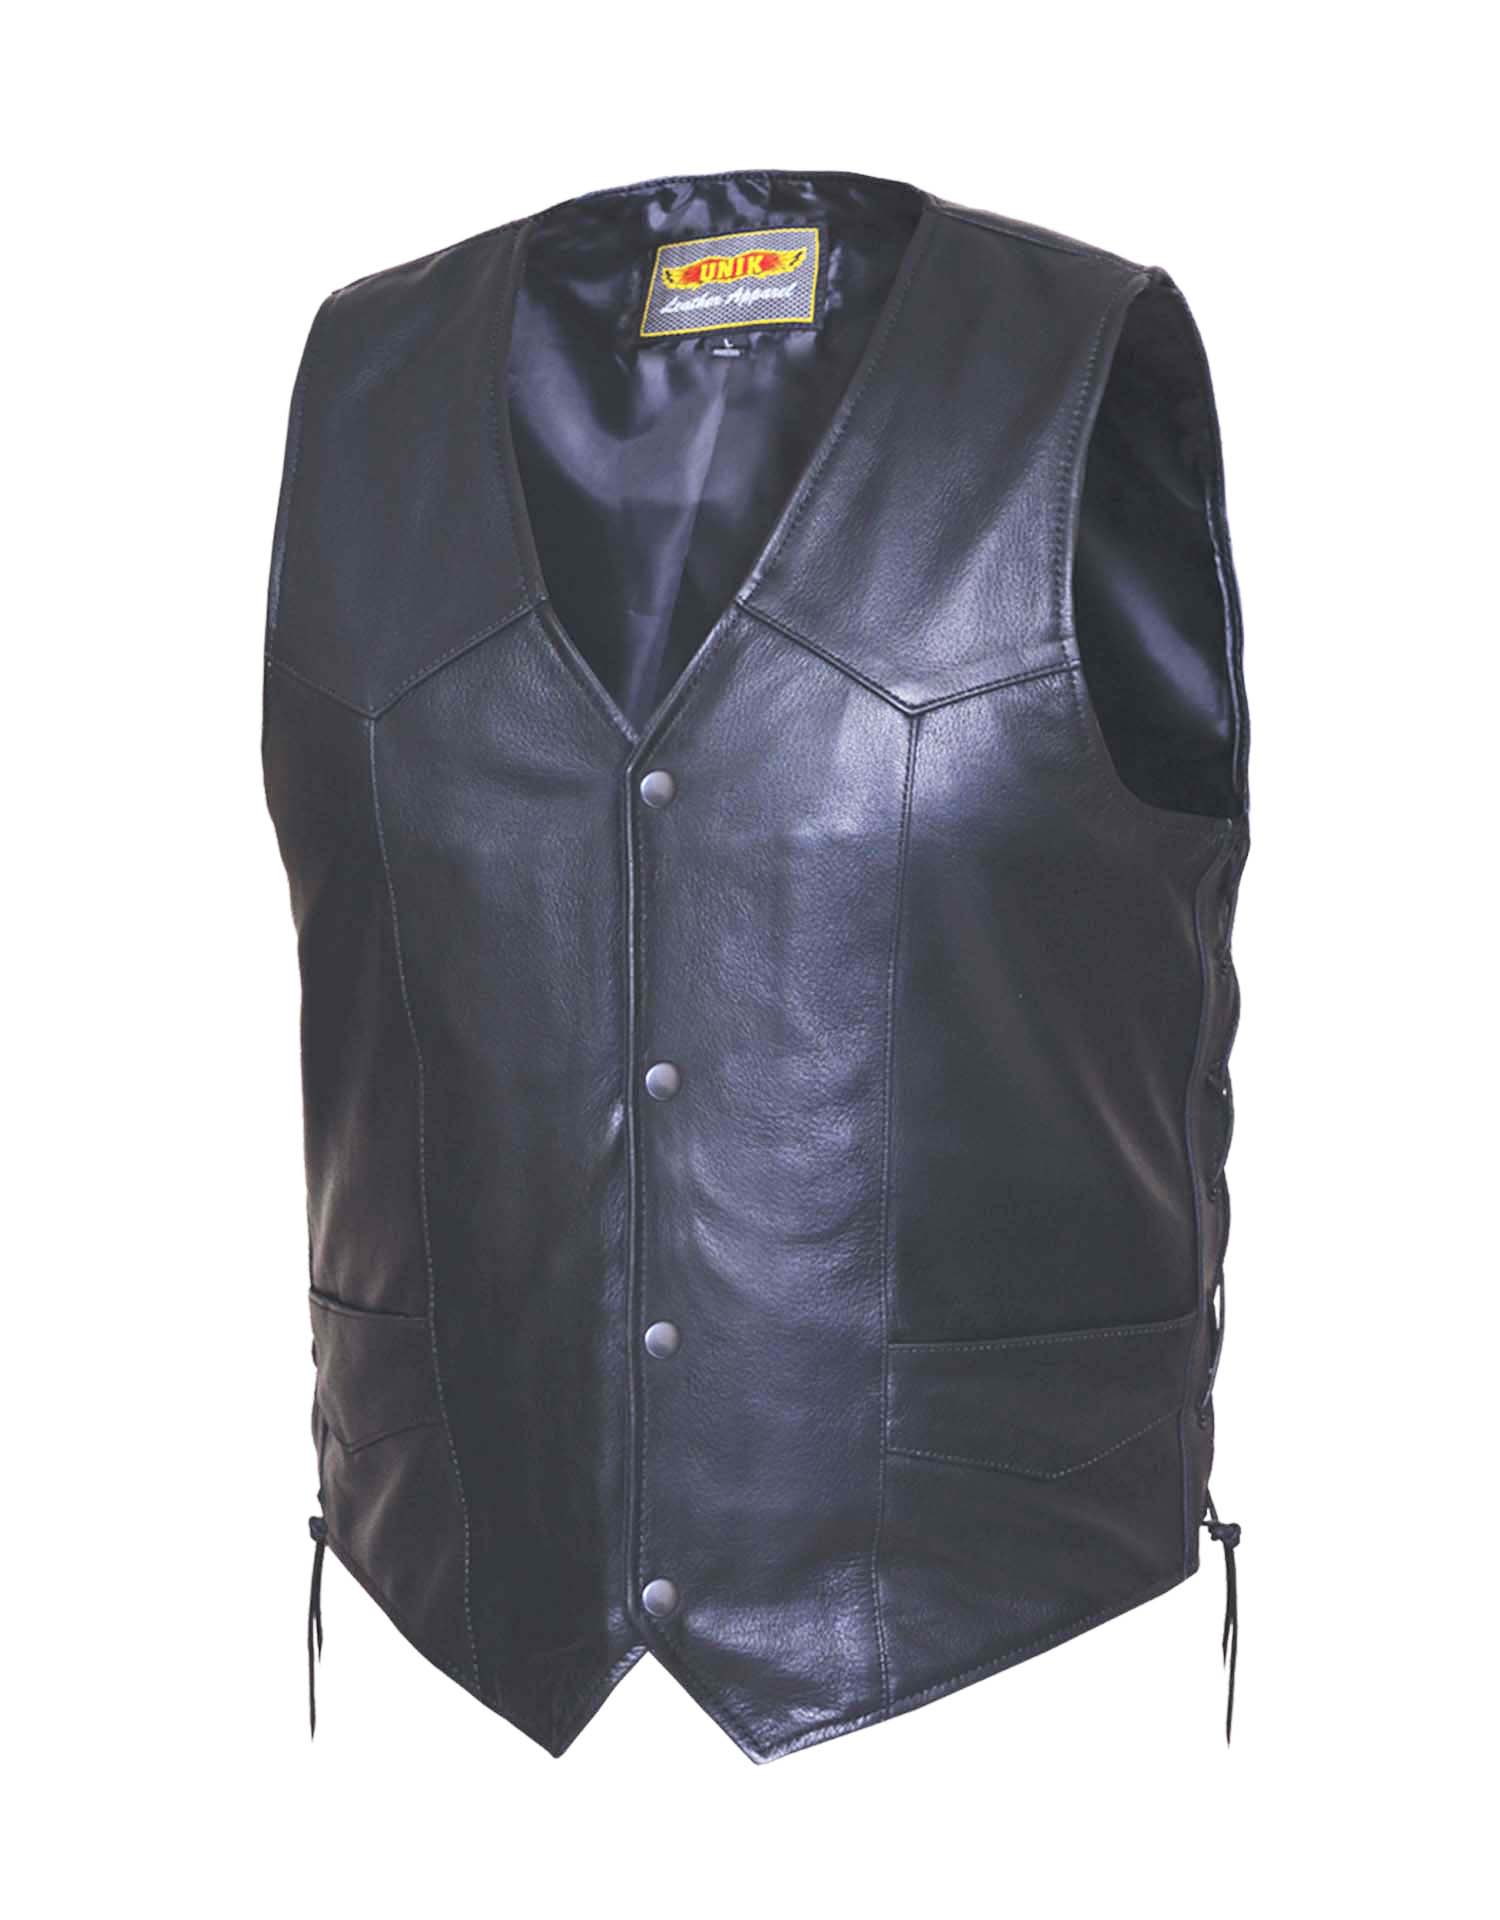 Mens Premium Traditional Leather Vest w/Lace Sides (Size: Small)